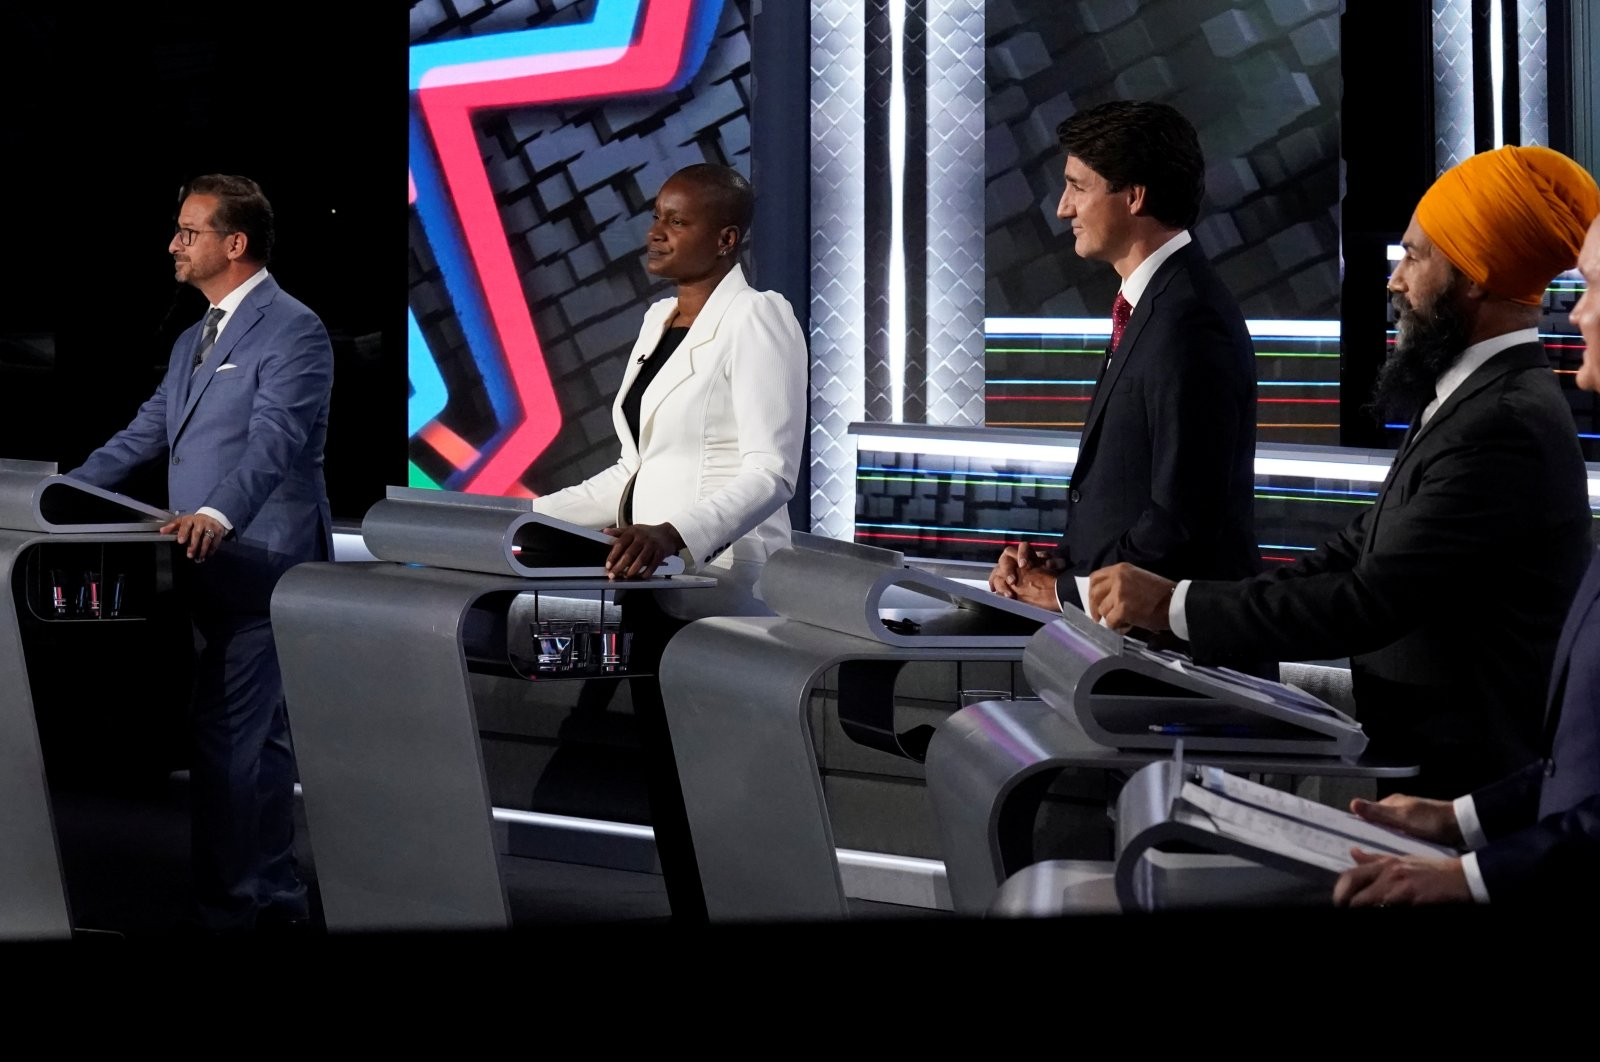 (L-R) Bloc Quebecois leader Yves-Francois Blanchet Green Party leader Annamie Paul, Liberal leader Justin Trudeau, NDP leader Jagmeet Singh, and Conservative leader Erin O'Toole take part in the federal election English-language Leaders debate in Gatineau, Canada, Sept. 9, 2021. (Reuters Photo)